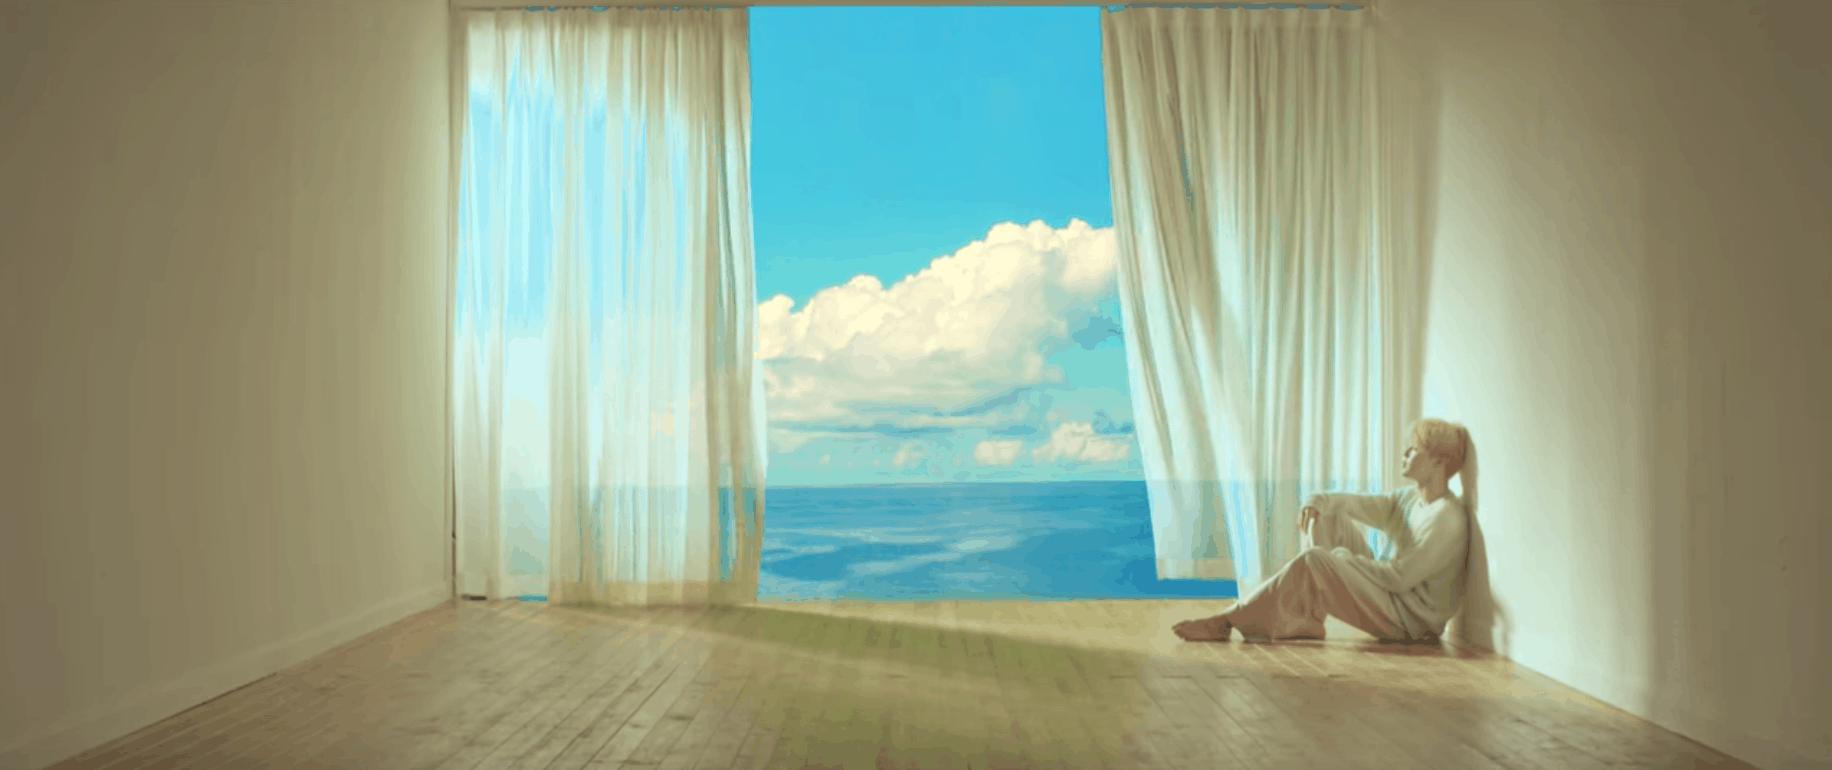 BTS Serendipity music video: Shot of the lead singer sitting on the floor in a room next to a big open window overlooking the ocean